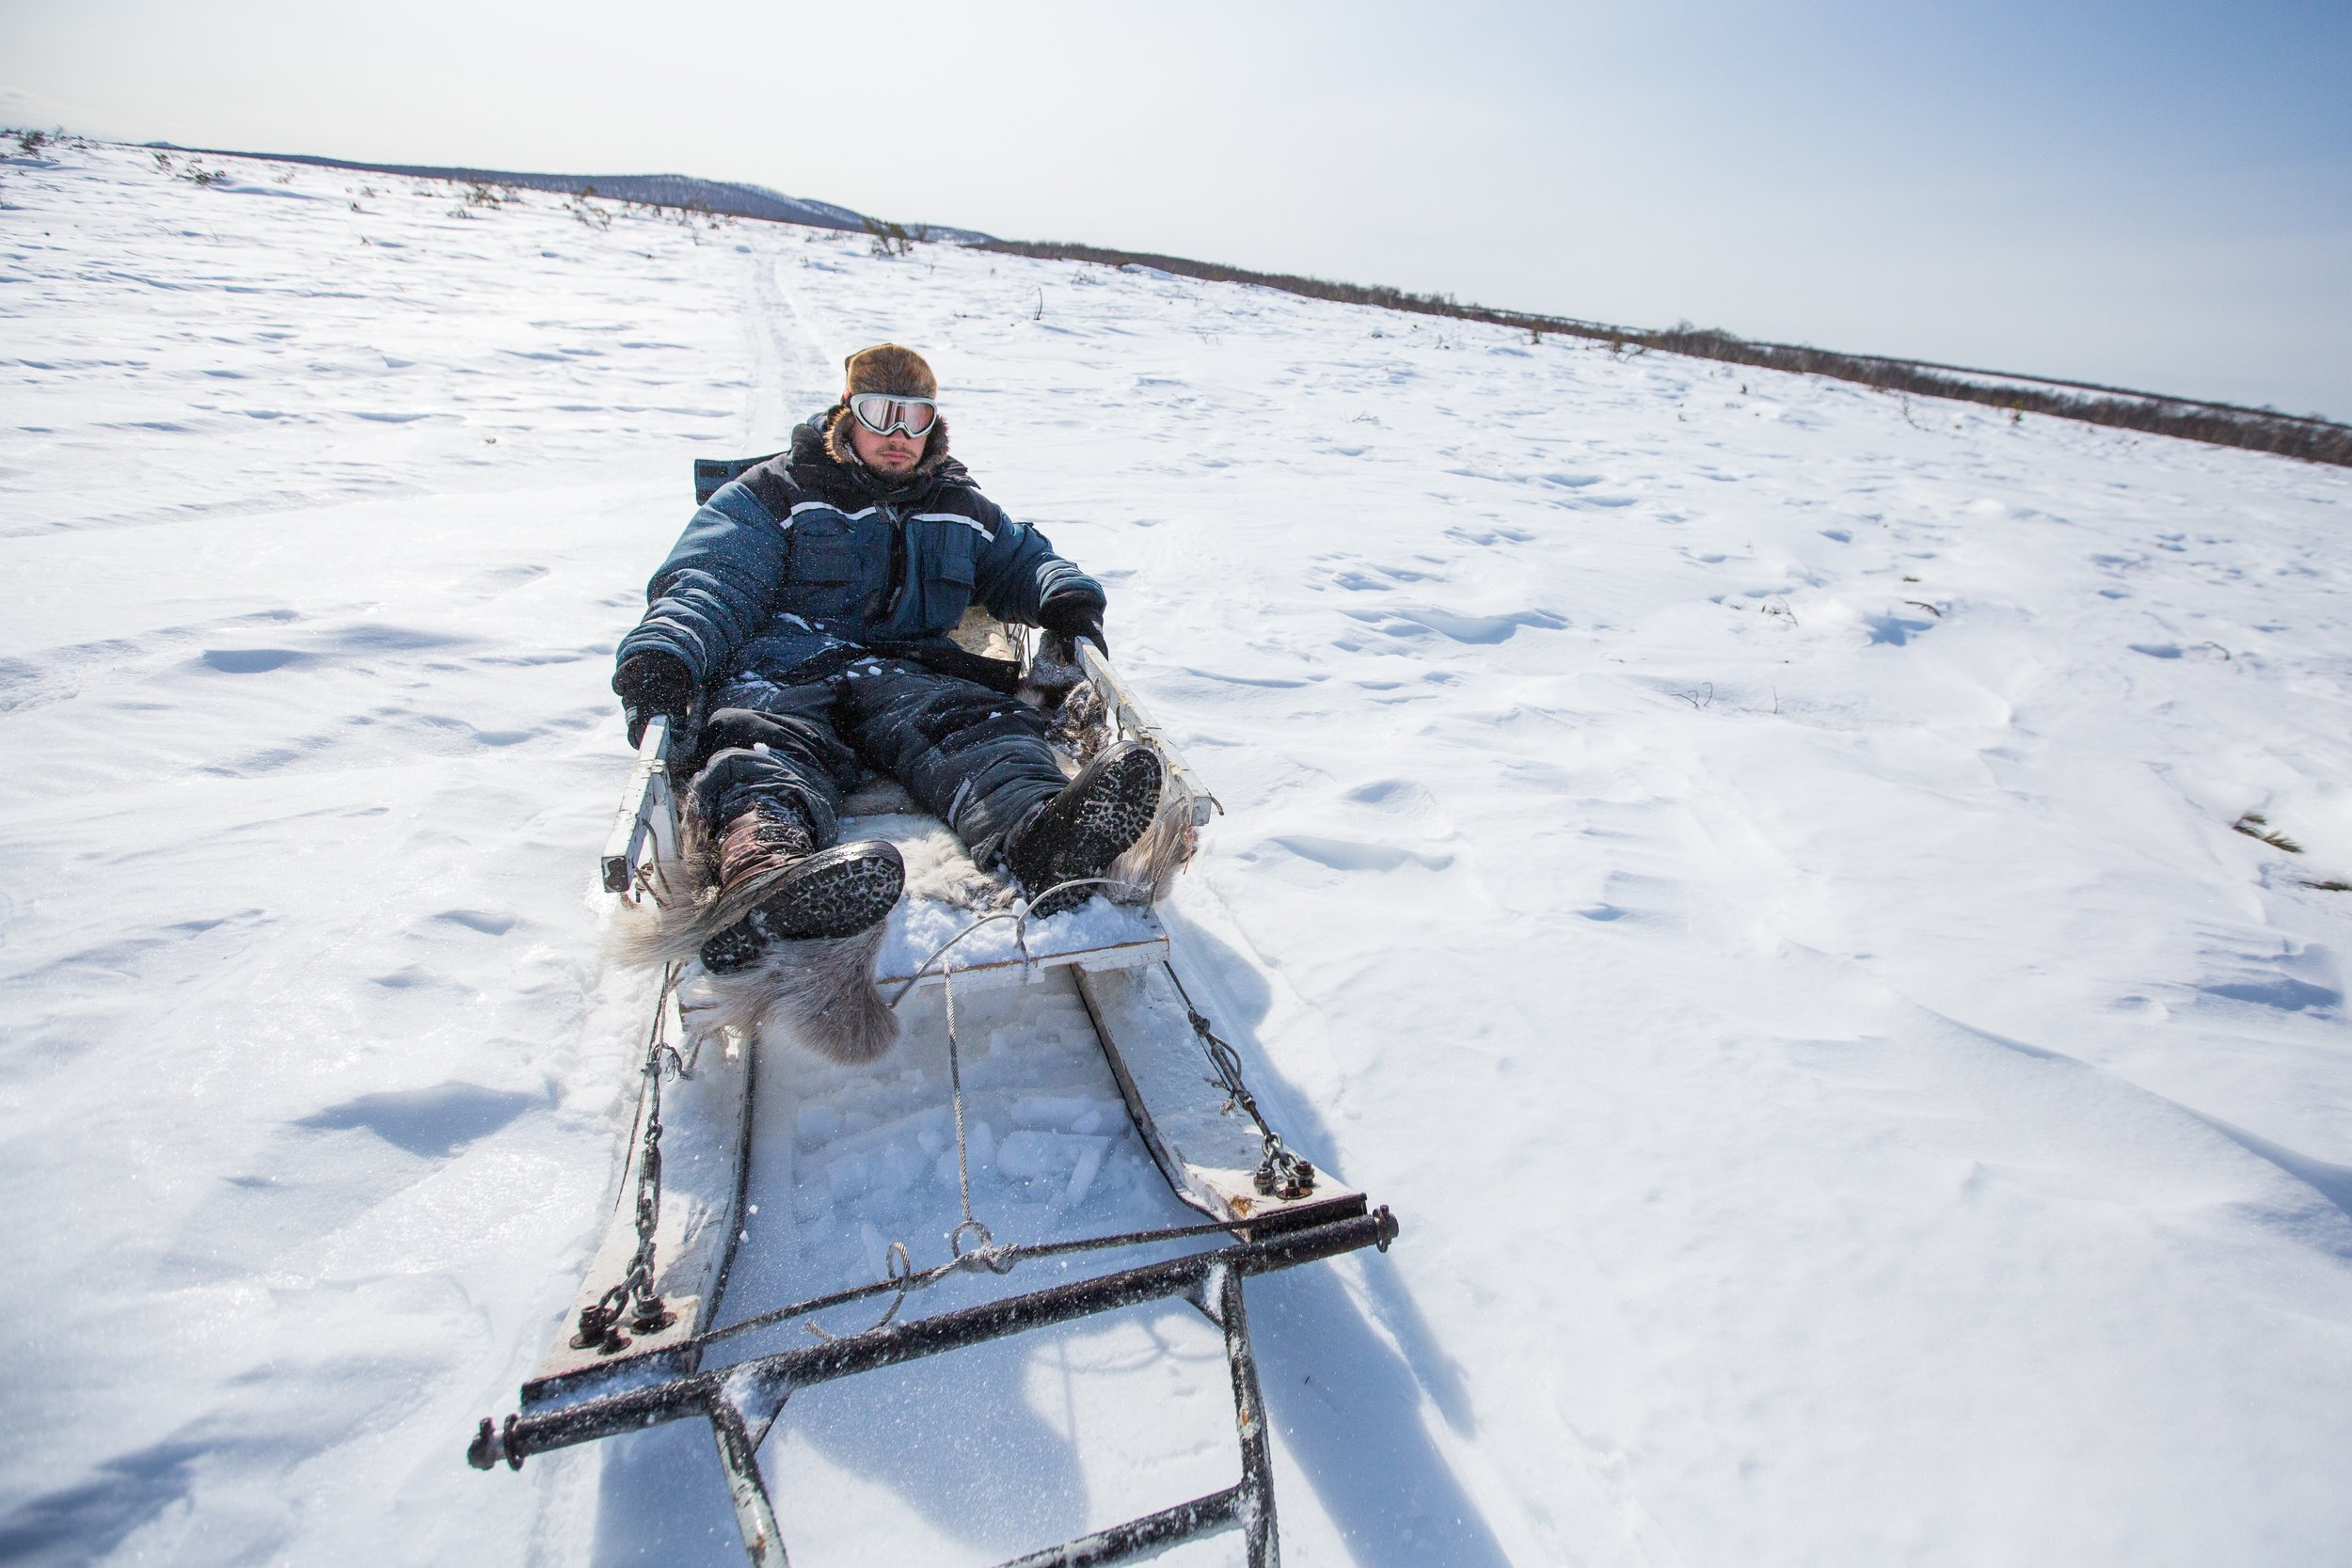 A sled pulled by a snowmobile cuts through the tundra in central Kamchatka.